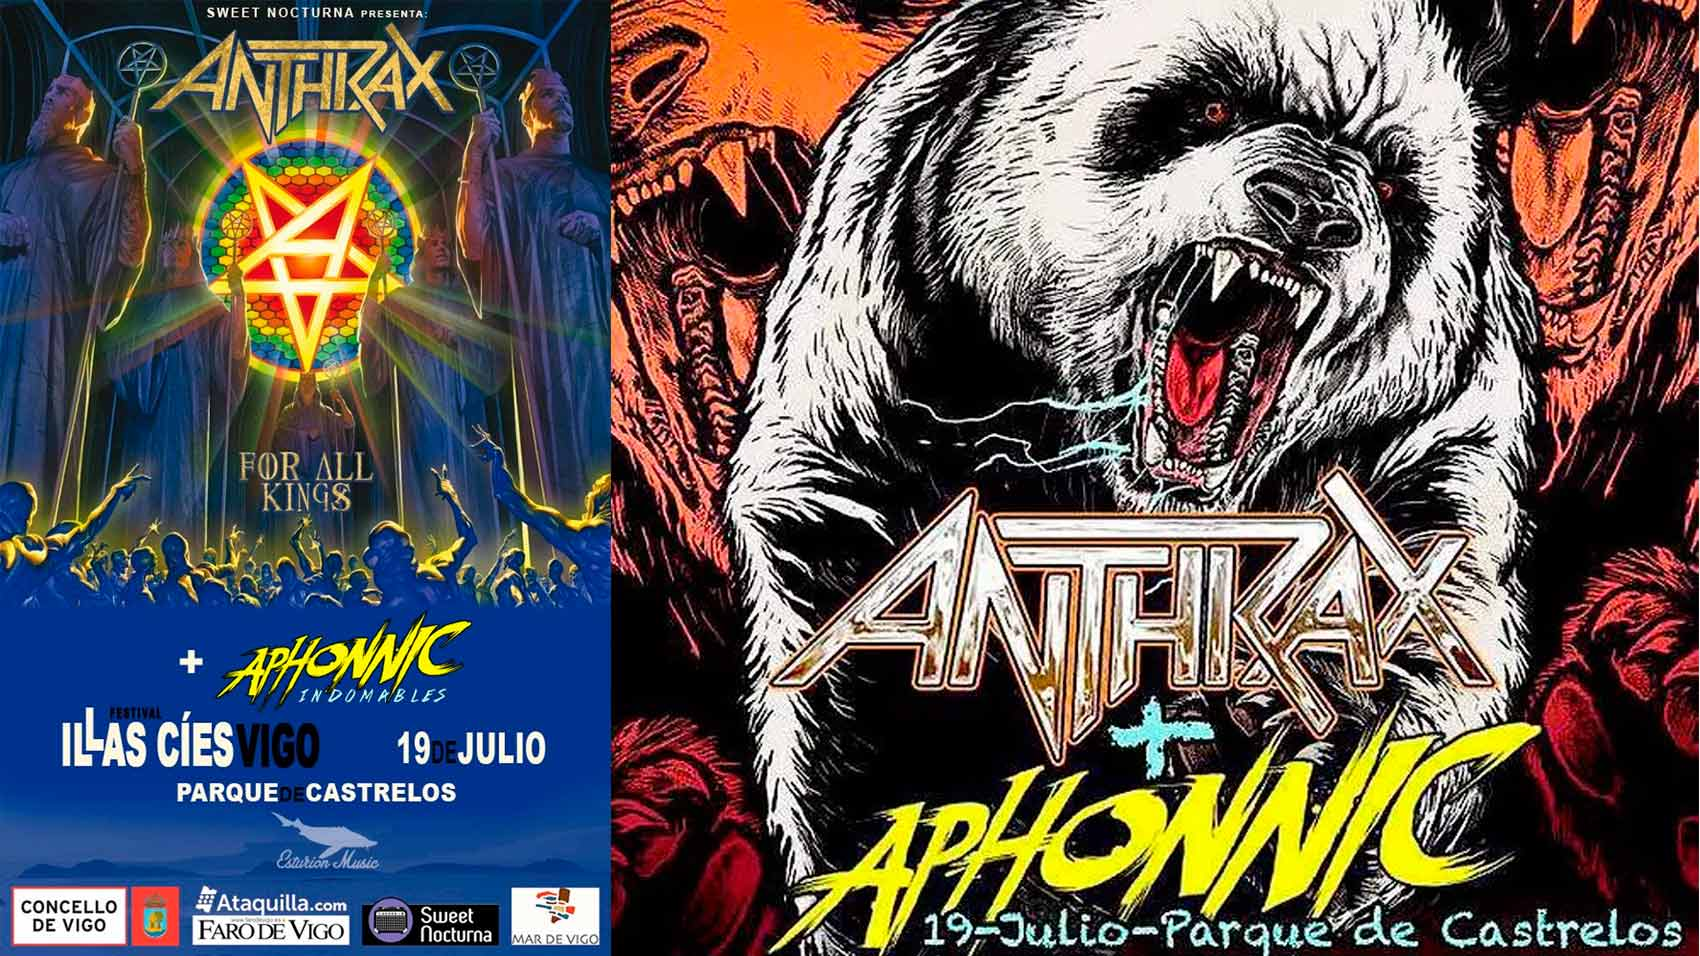 anthrax-aphonnic